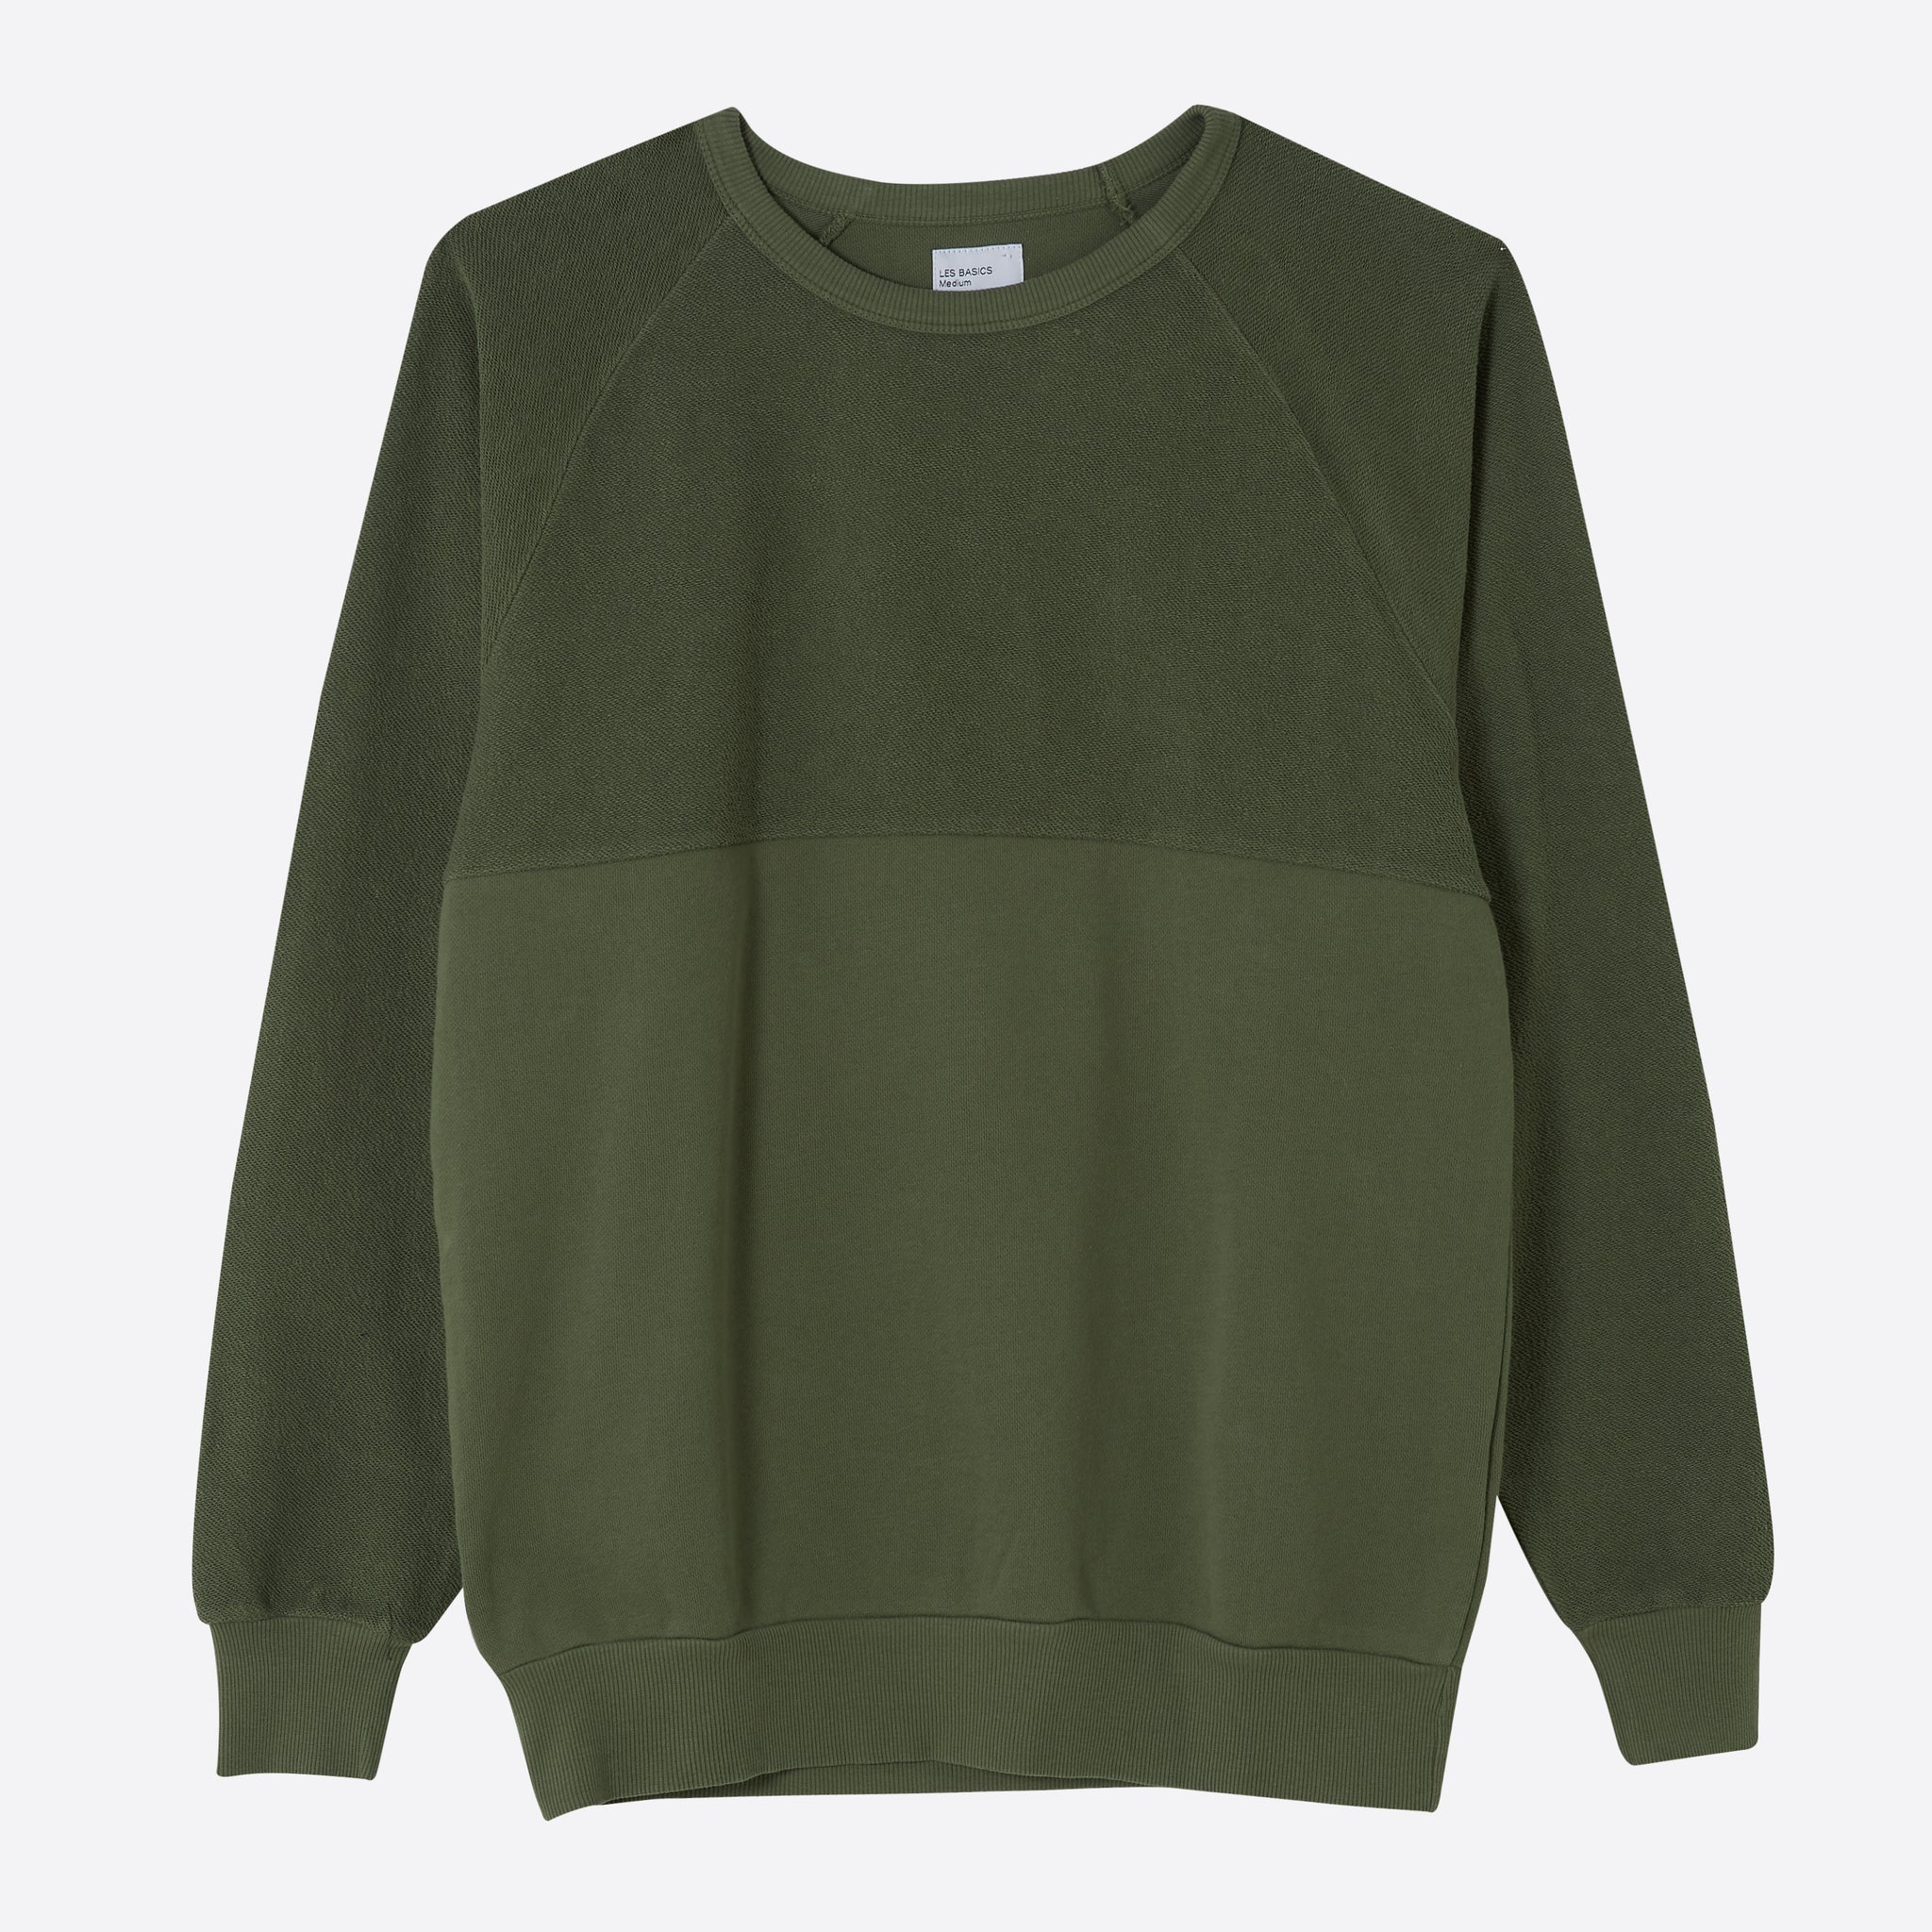 Les Basics Le 5050 Sweat in Army Green